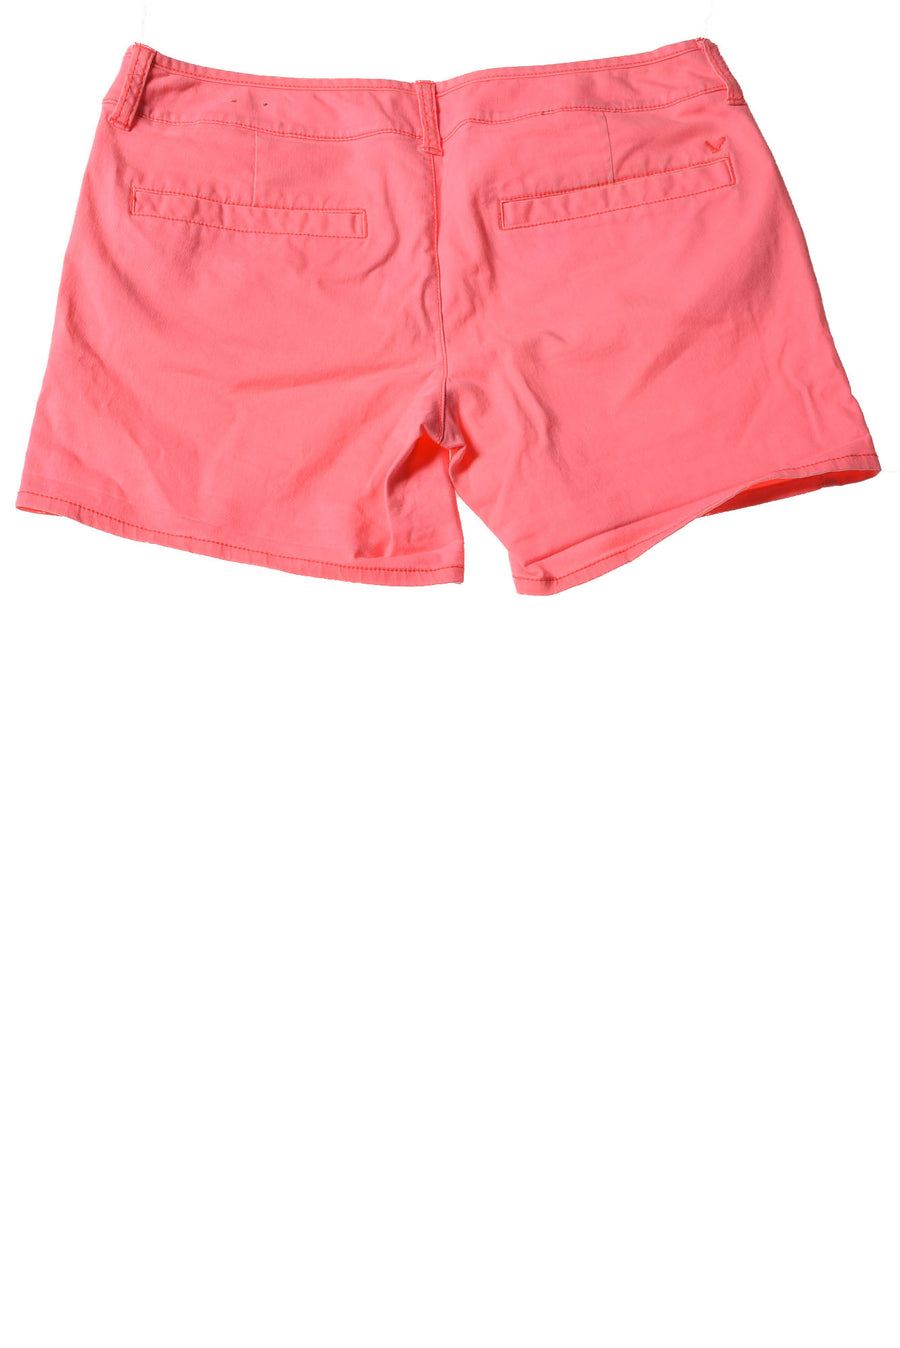 USED American Eagle Women's Shorts 6 Pink